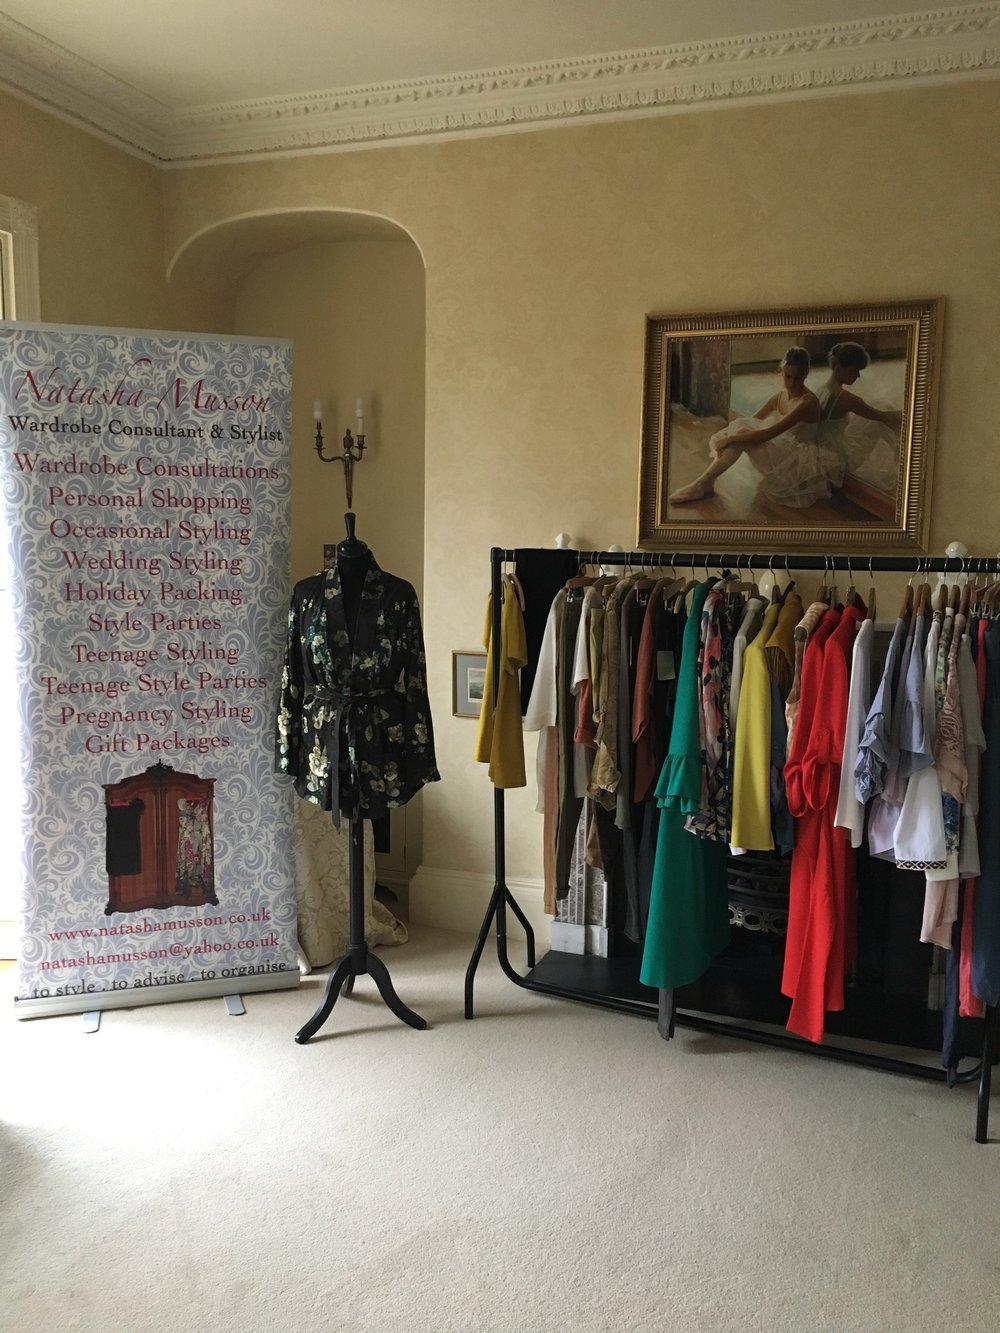 The rail of clothes for the Style Presentation